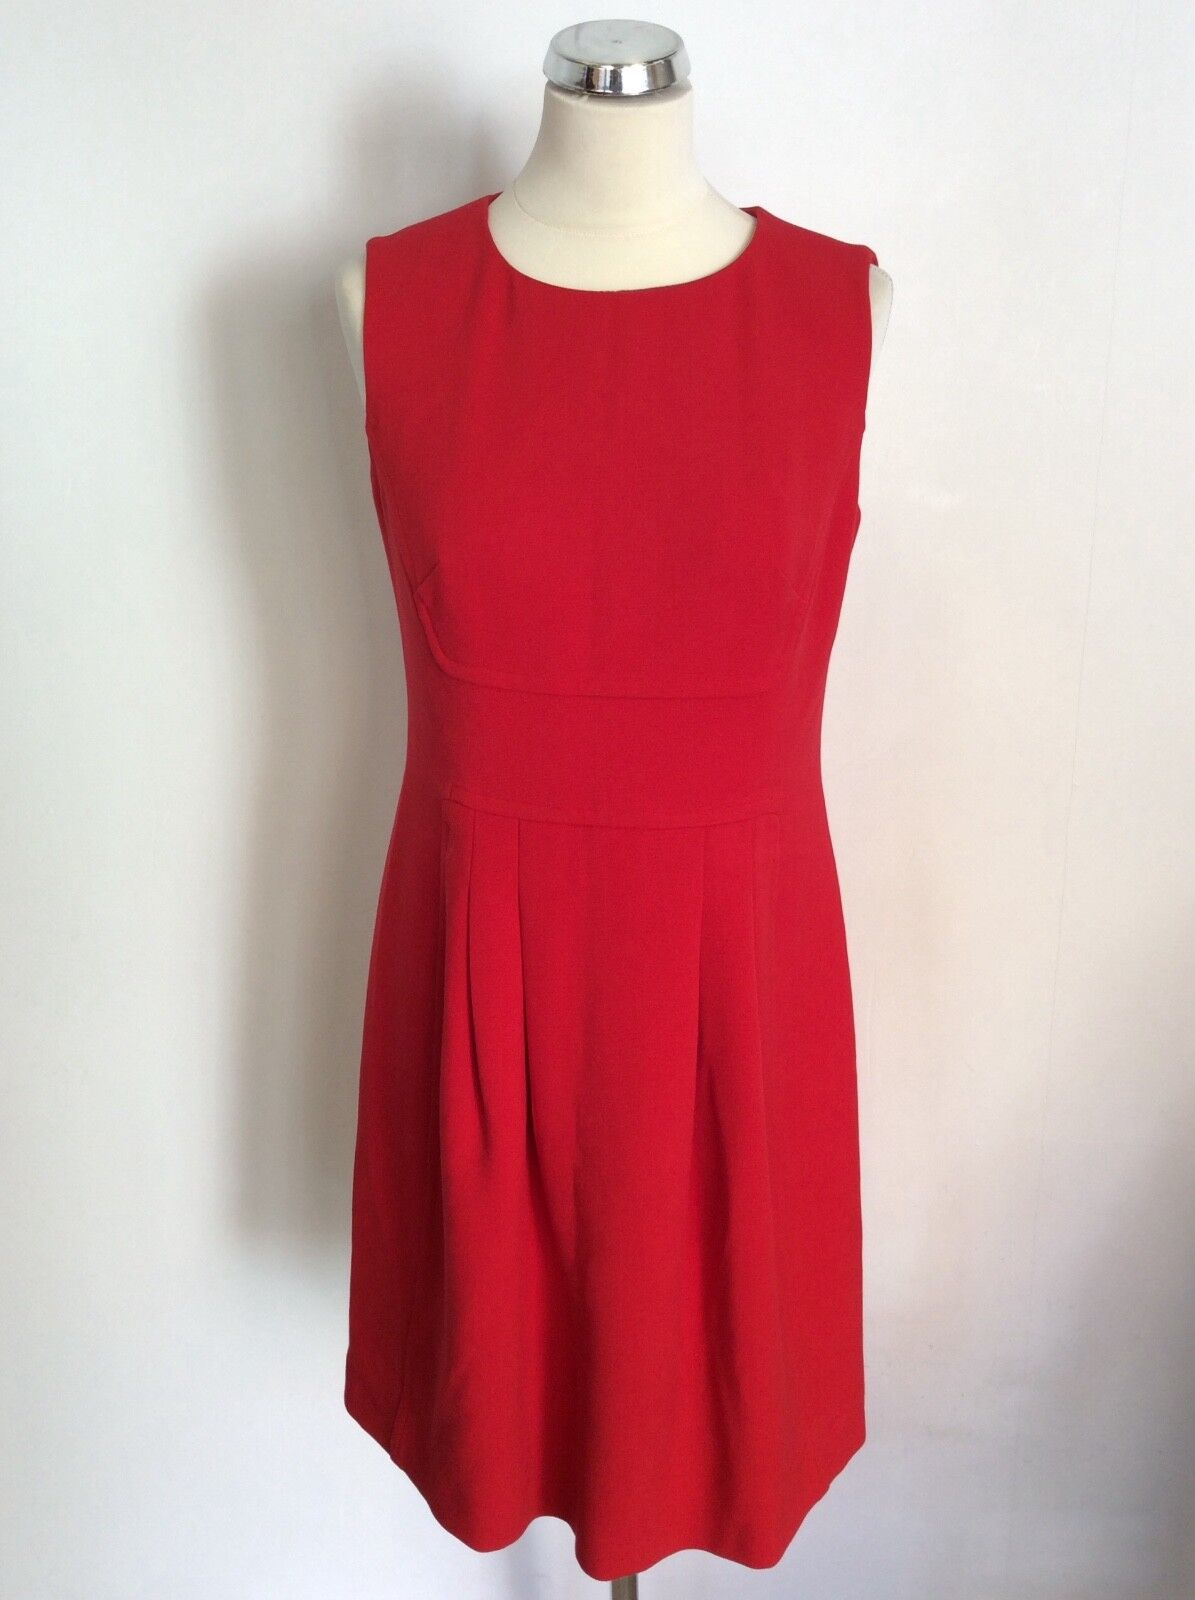 HOBBS RED SLEEVELESS PLEATED FRONT SHIFT DRESS SIZE 12